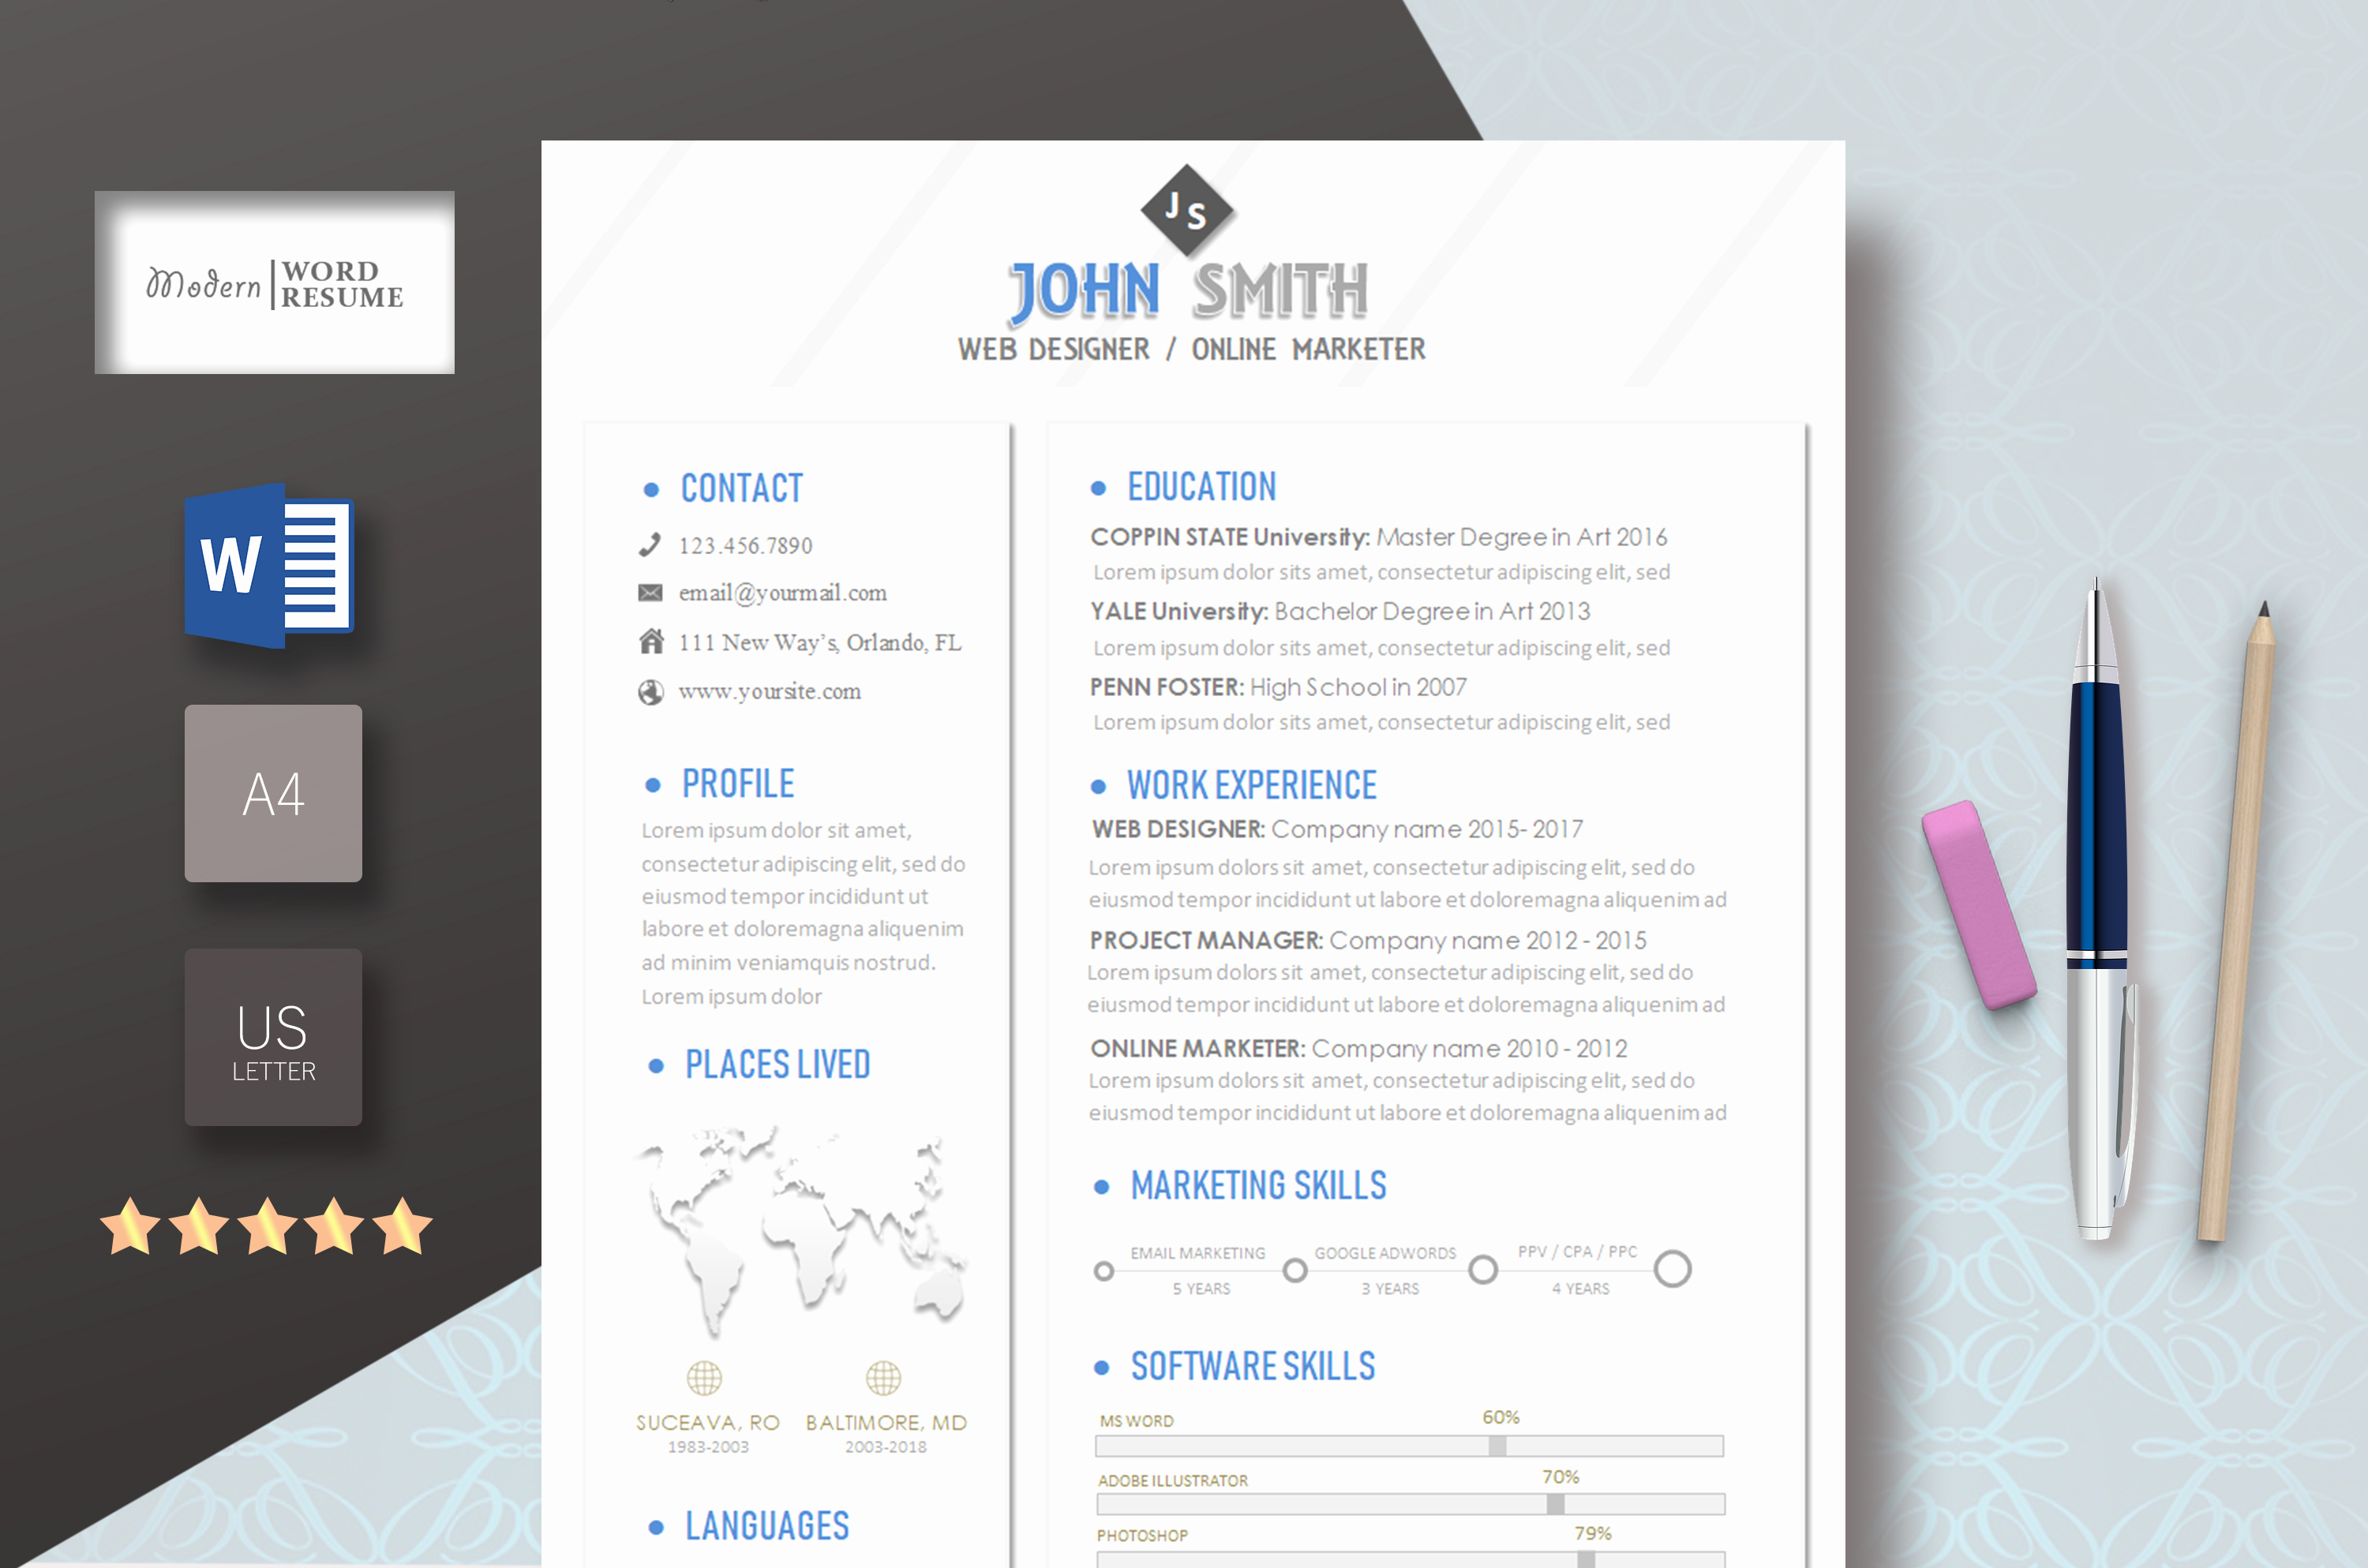 Modern Resume Template Word Beautiful Flat Professional & Modern Resume Template for Word